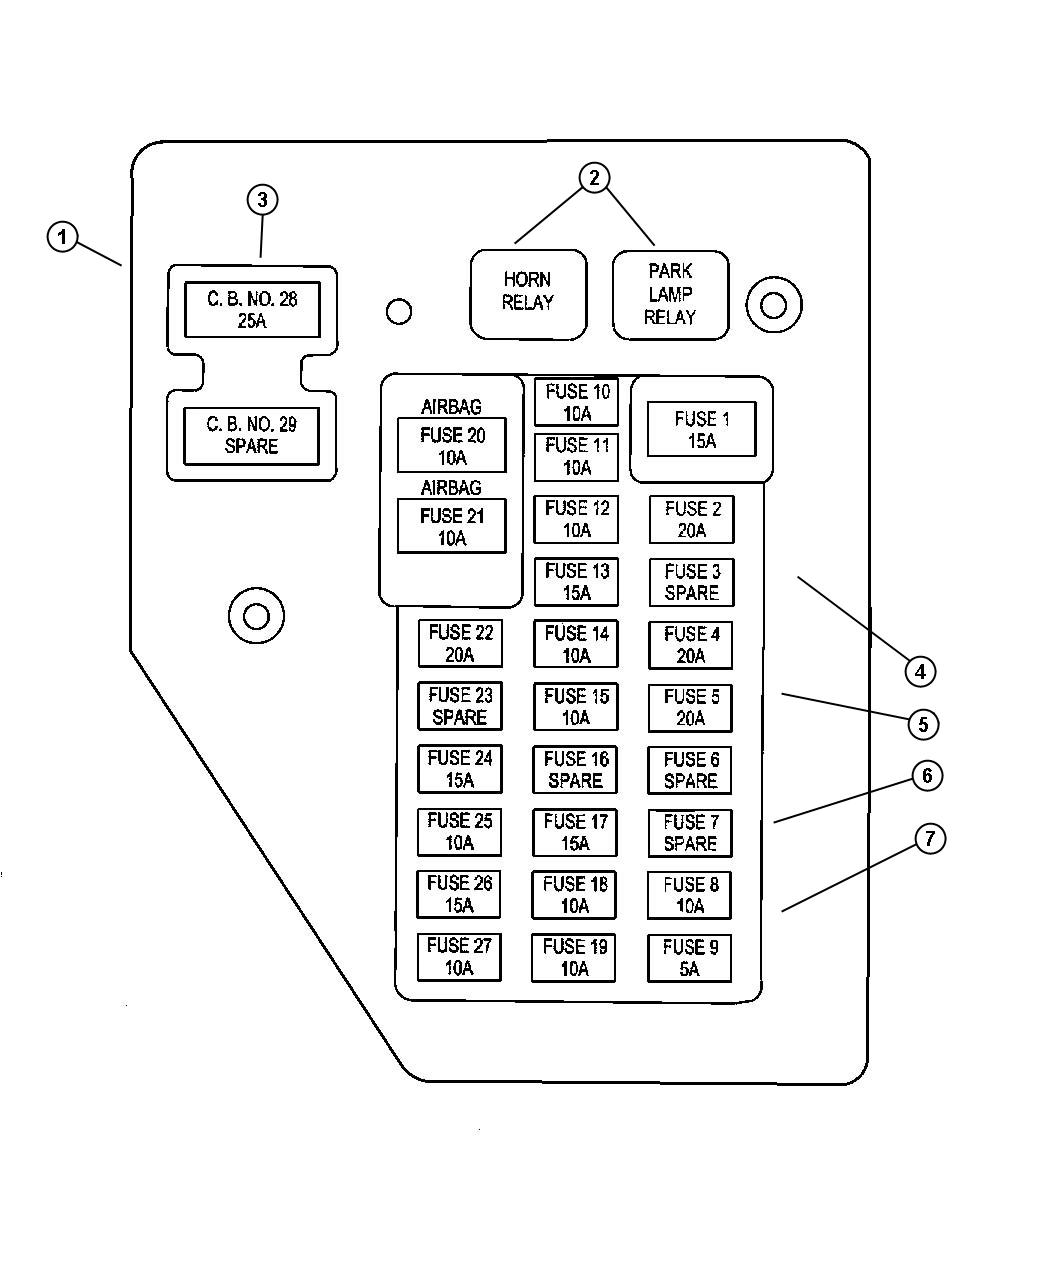 fuse box diagram for 2009 ford crown victoria